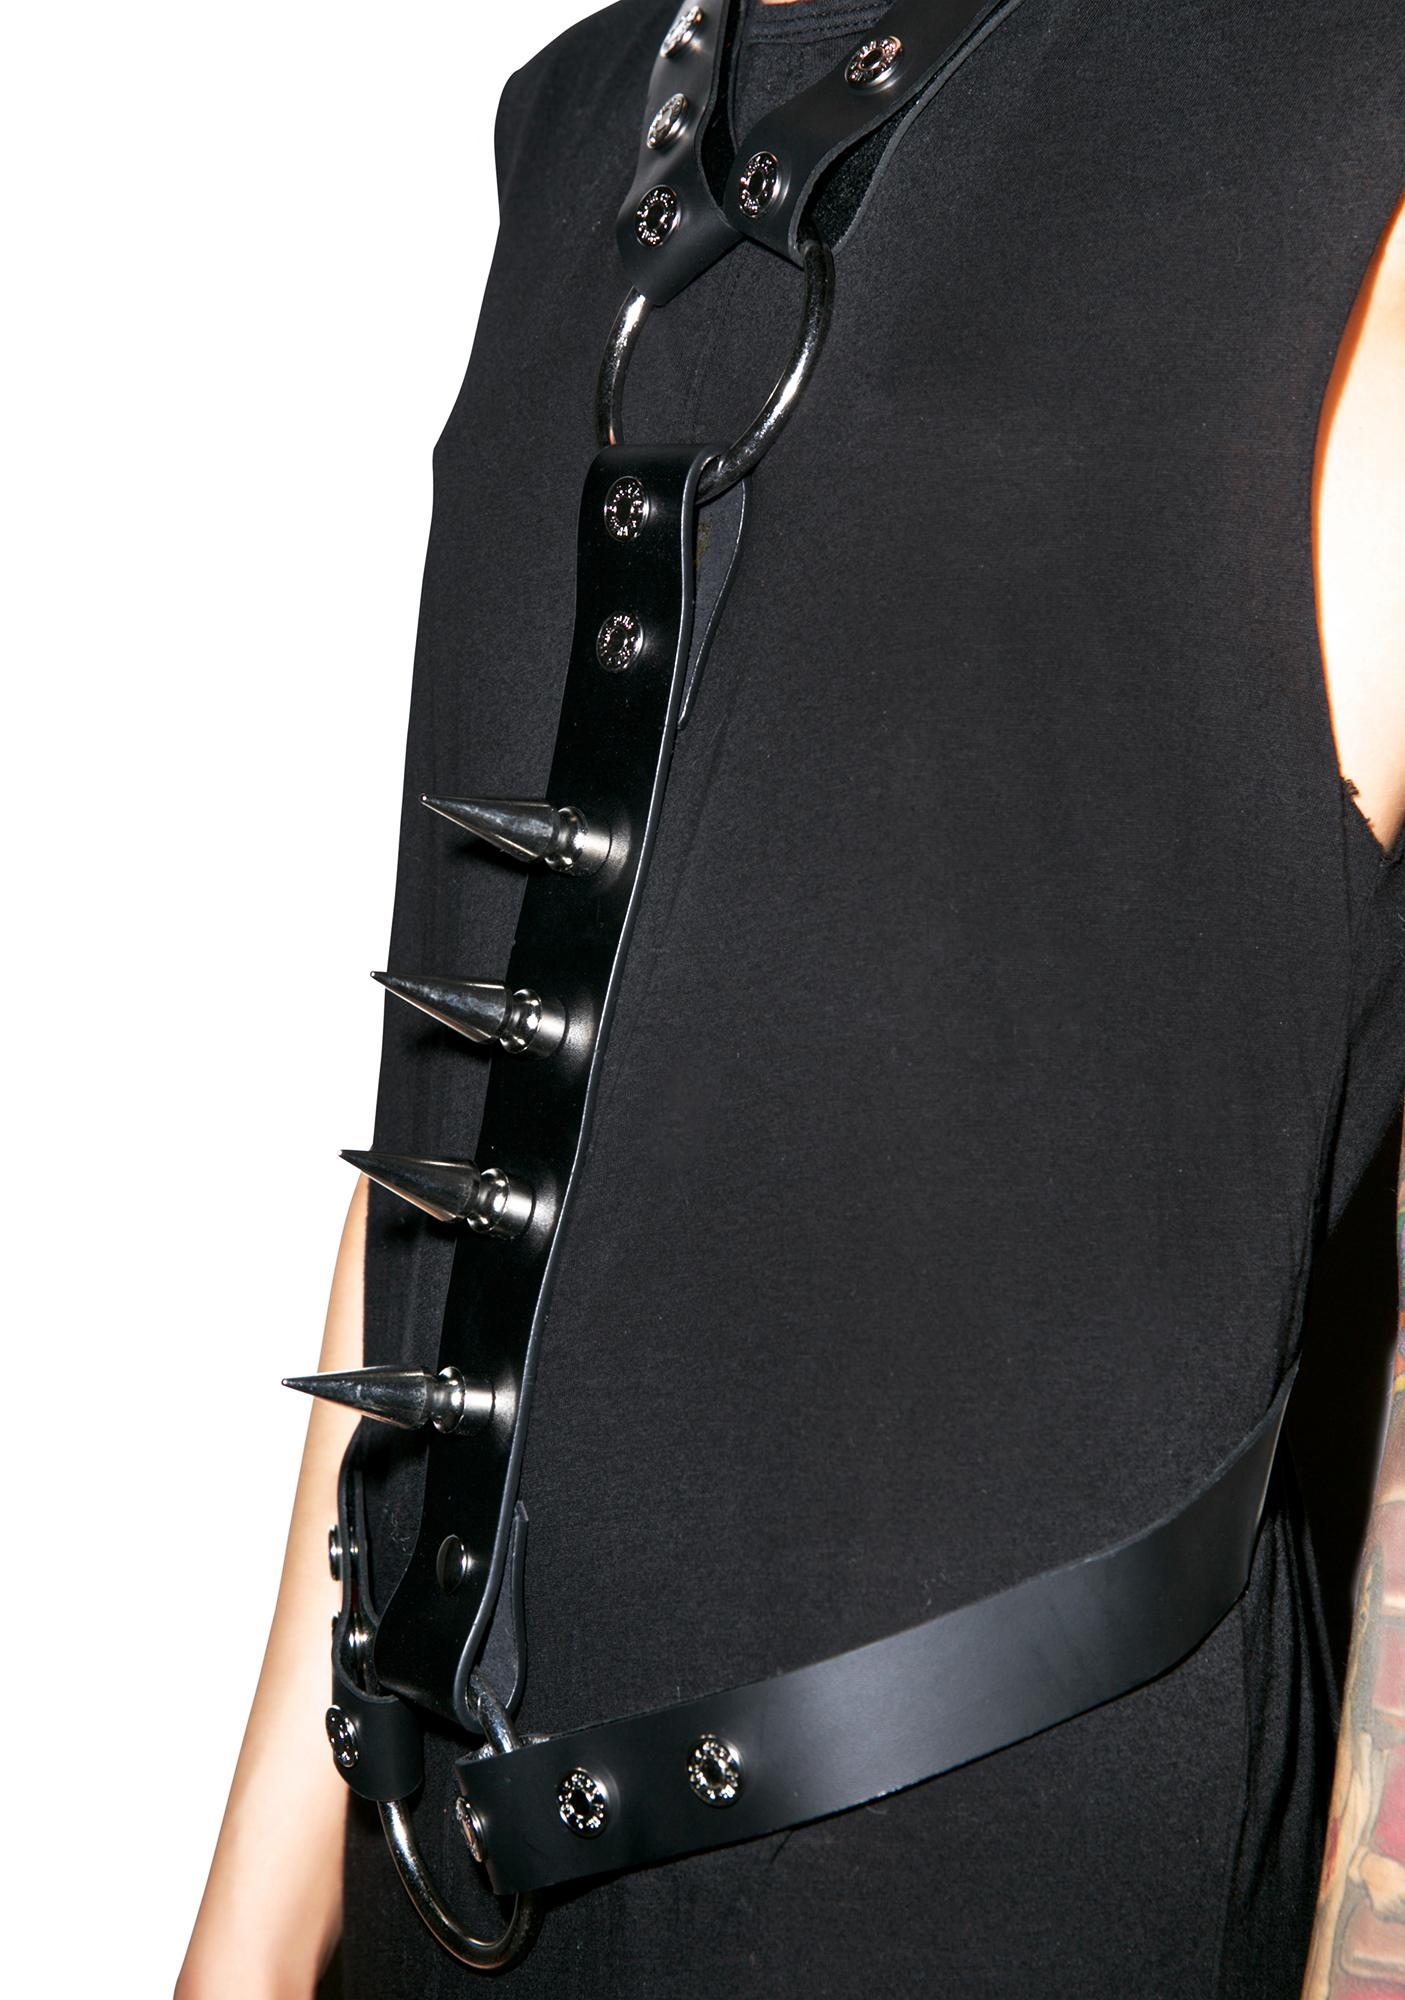 Club Exx Spiked For Pleasure Harness